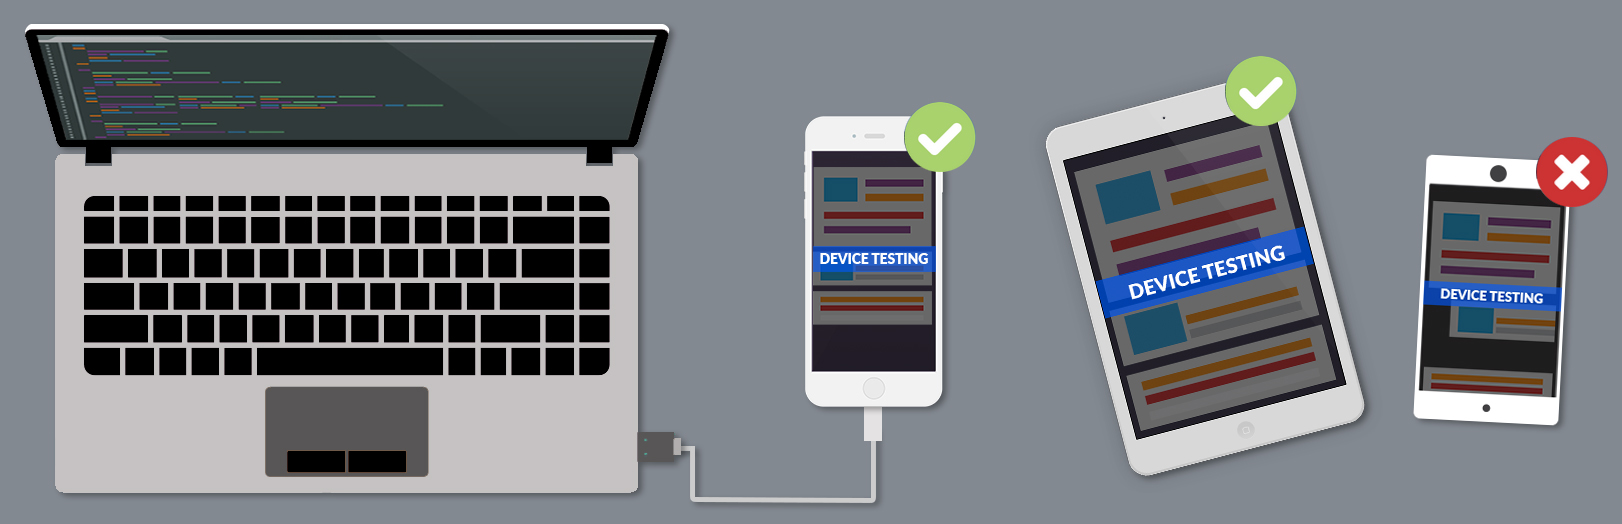 Image showing the testing process on phones/tablets